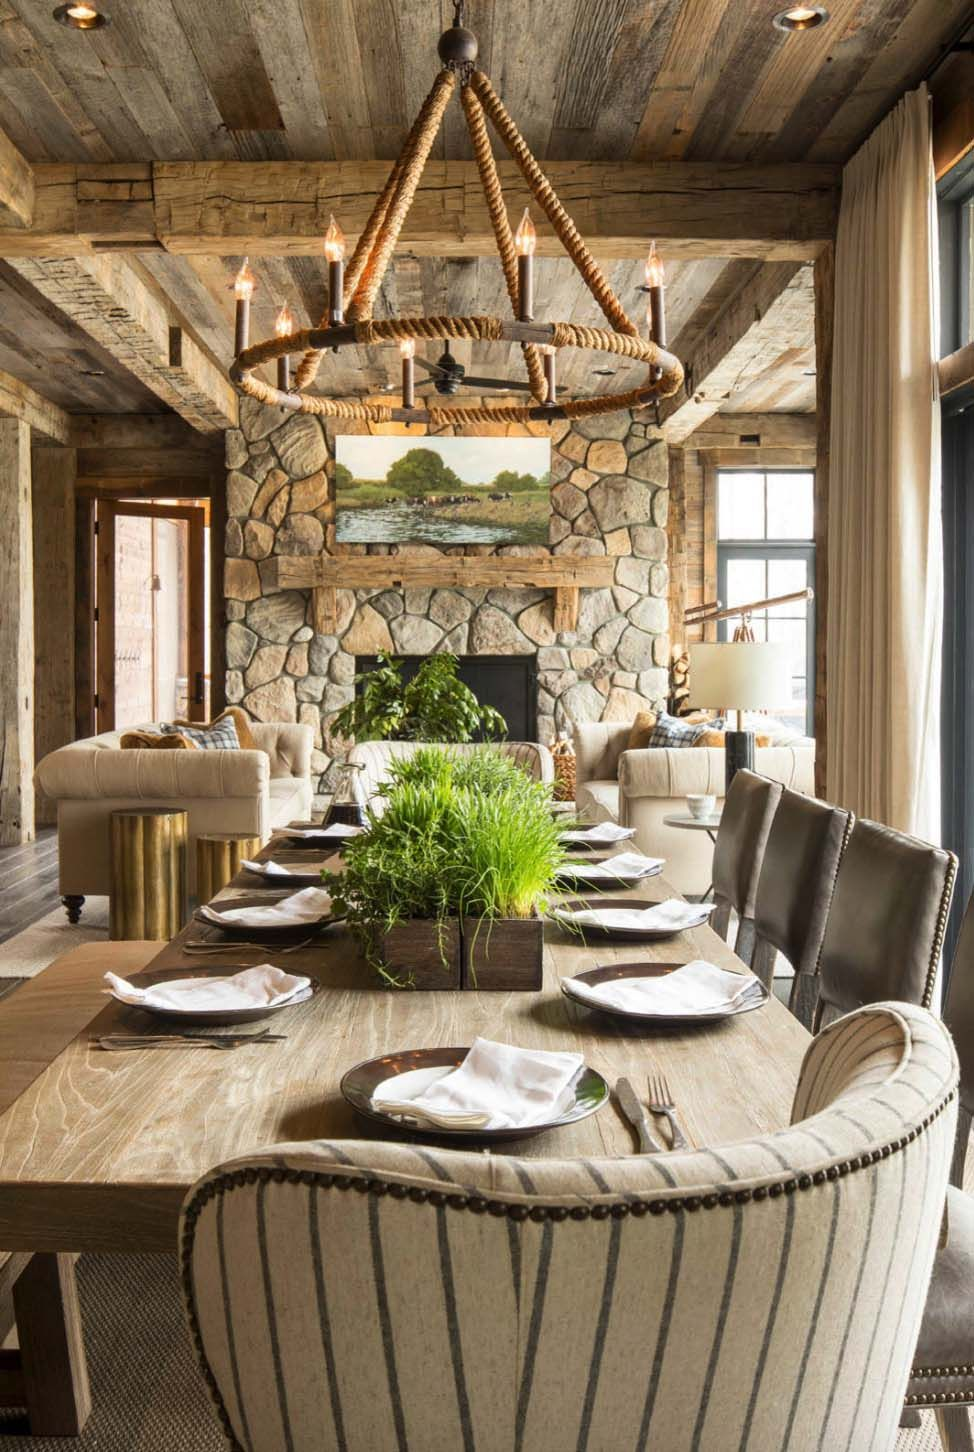 Rustic lake house martha ohara interiors chandelier fro currey and co